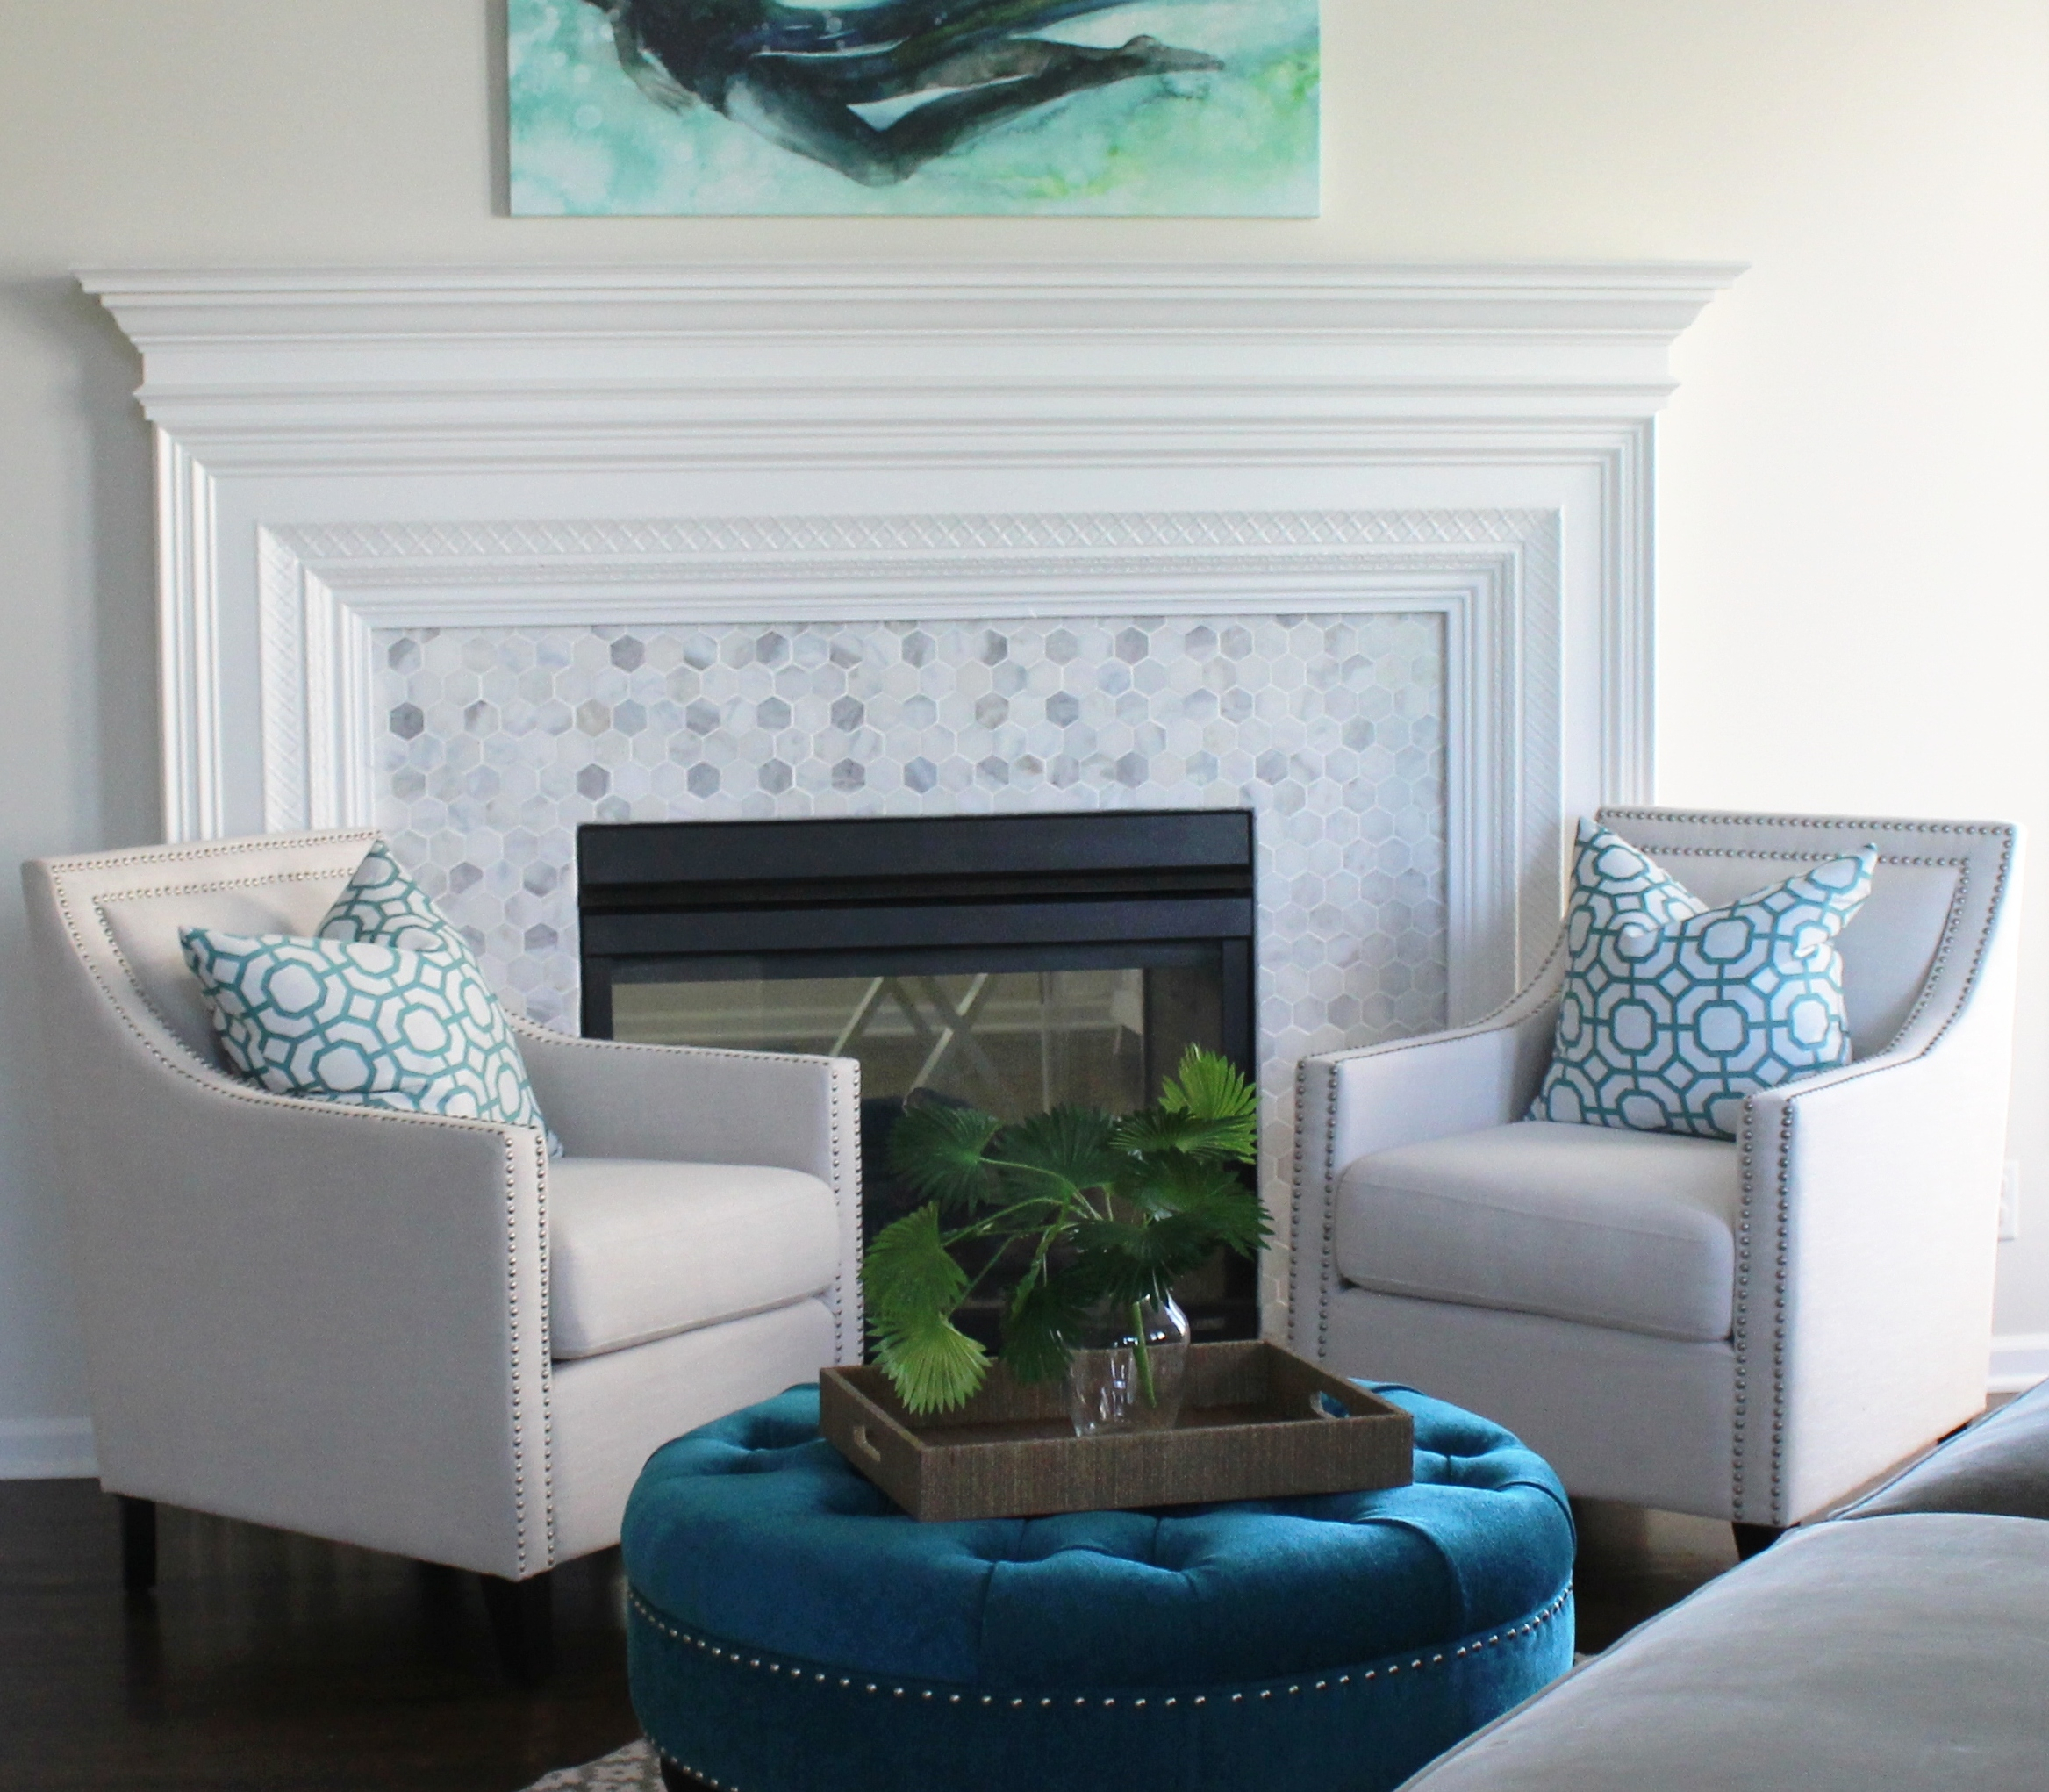 Interior Design: 3 Savvy Ways To Makeover Your Living Room Using Intended For Karen Sofa Chairs (Image 5 of 25)